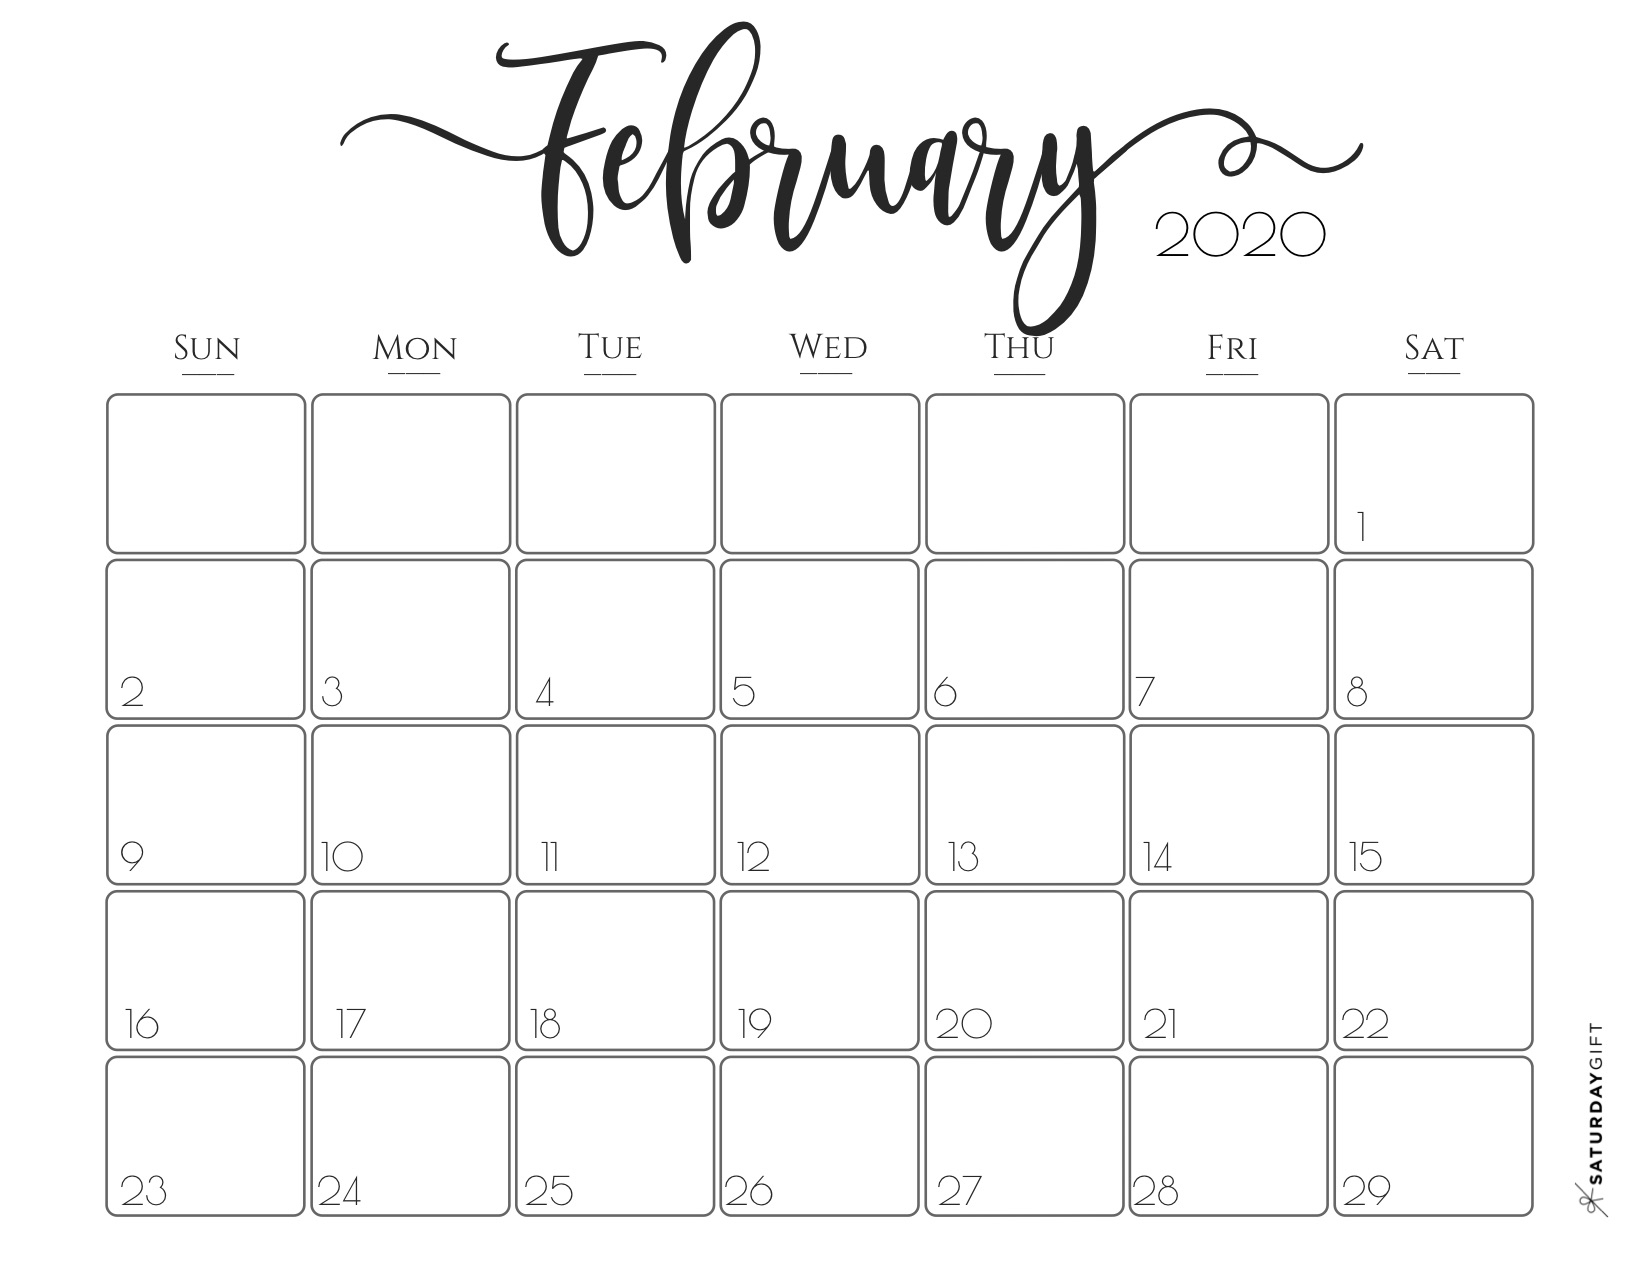 30 Free February 2020 Calendars For Home Or Office - Onedesblog